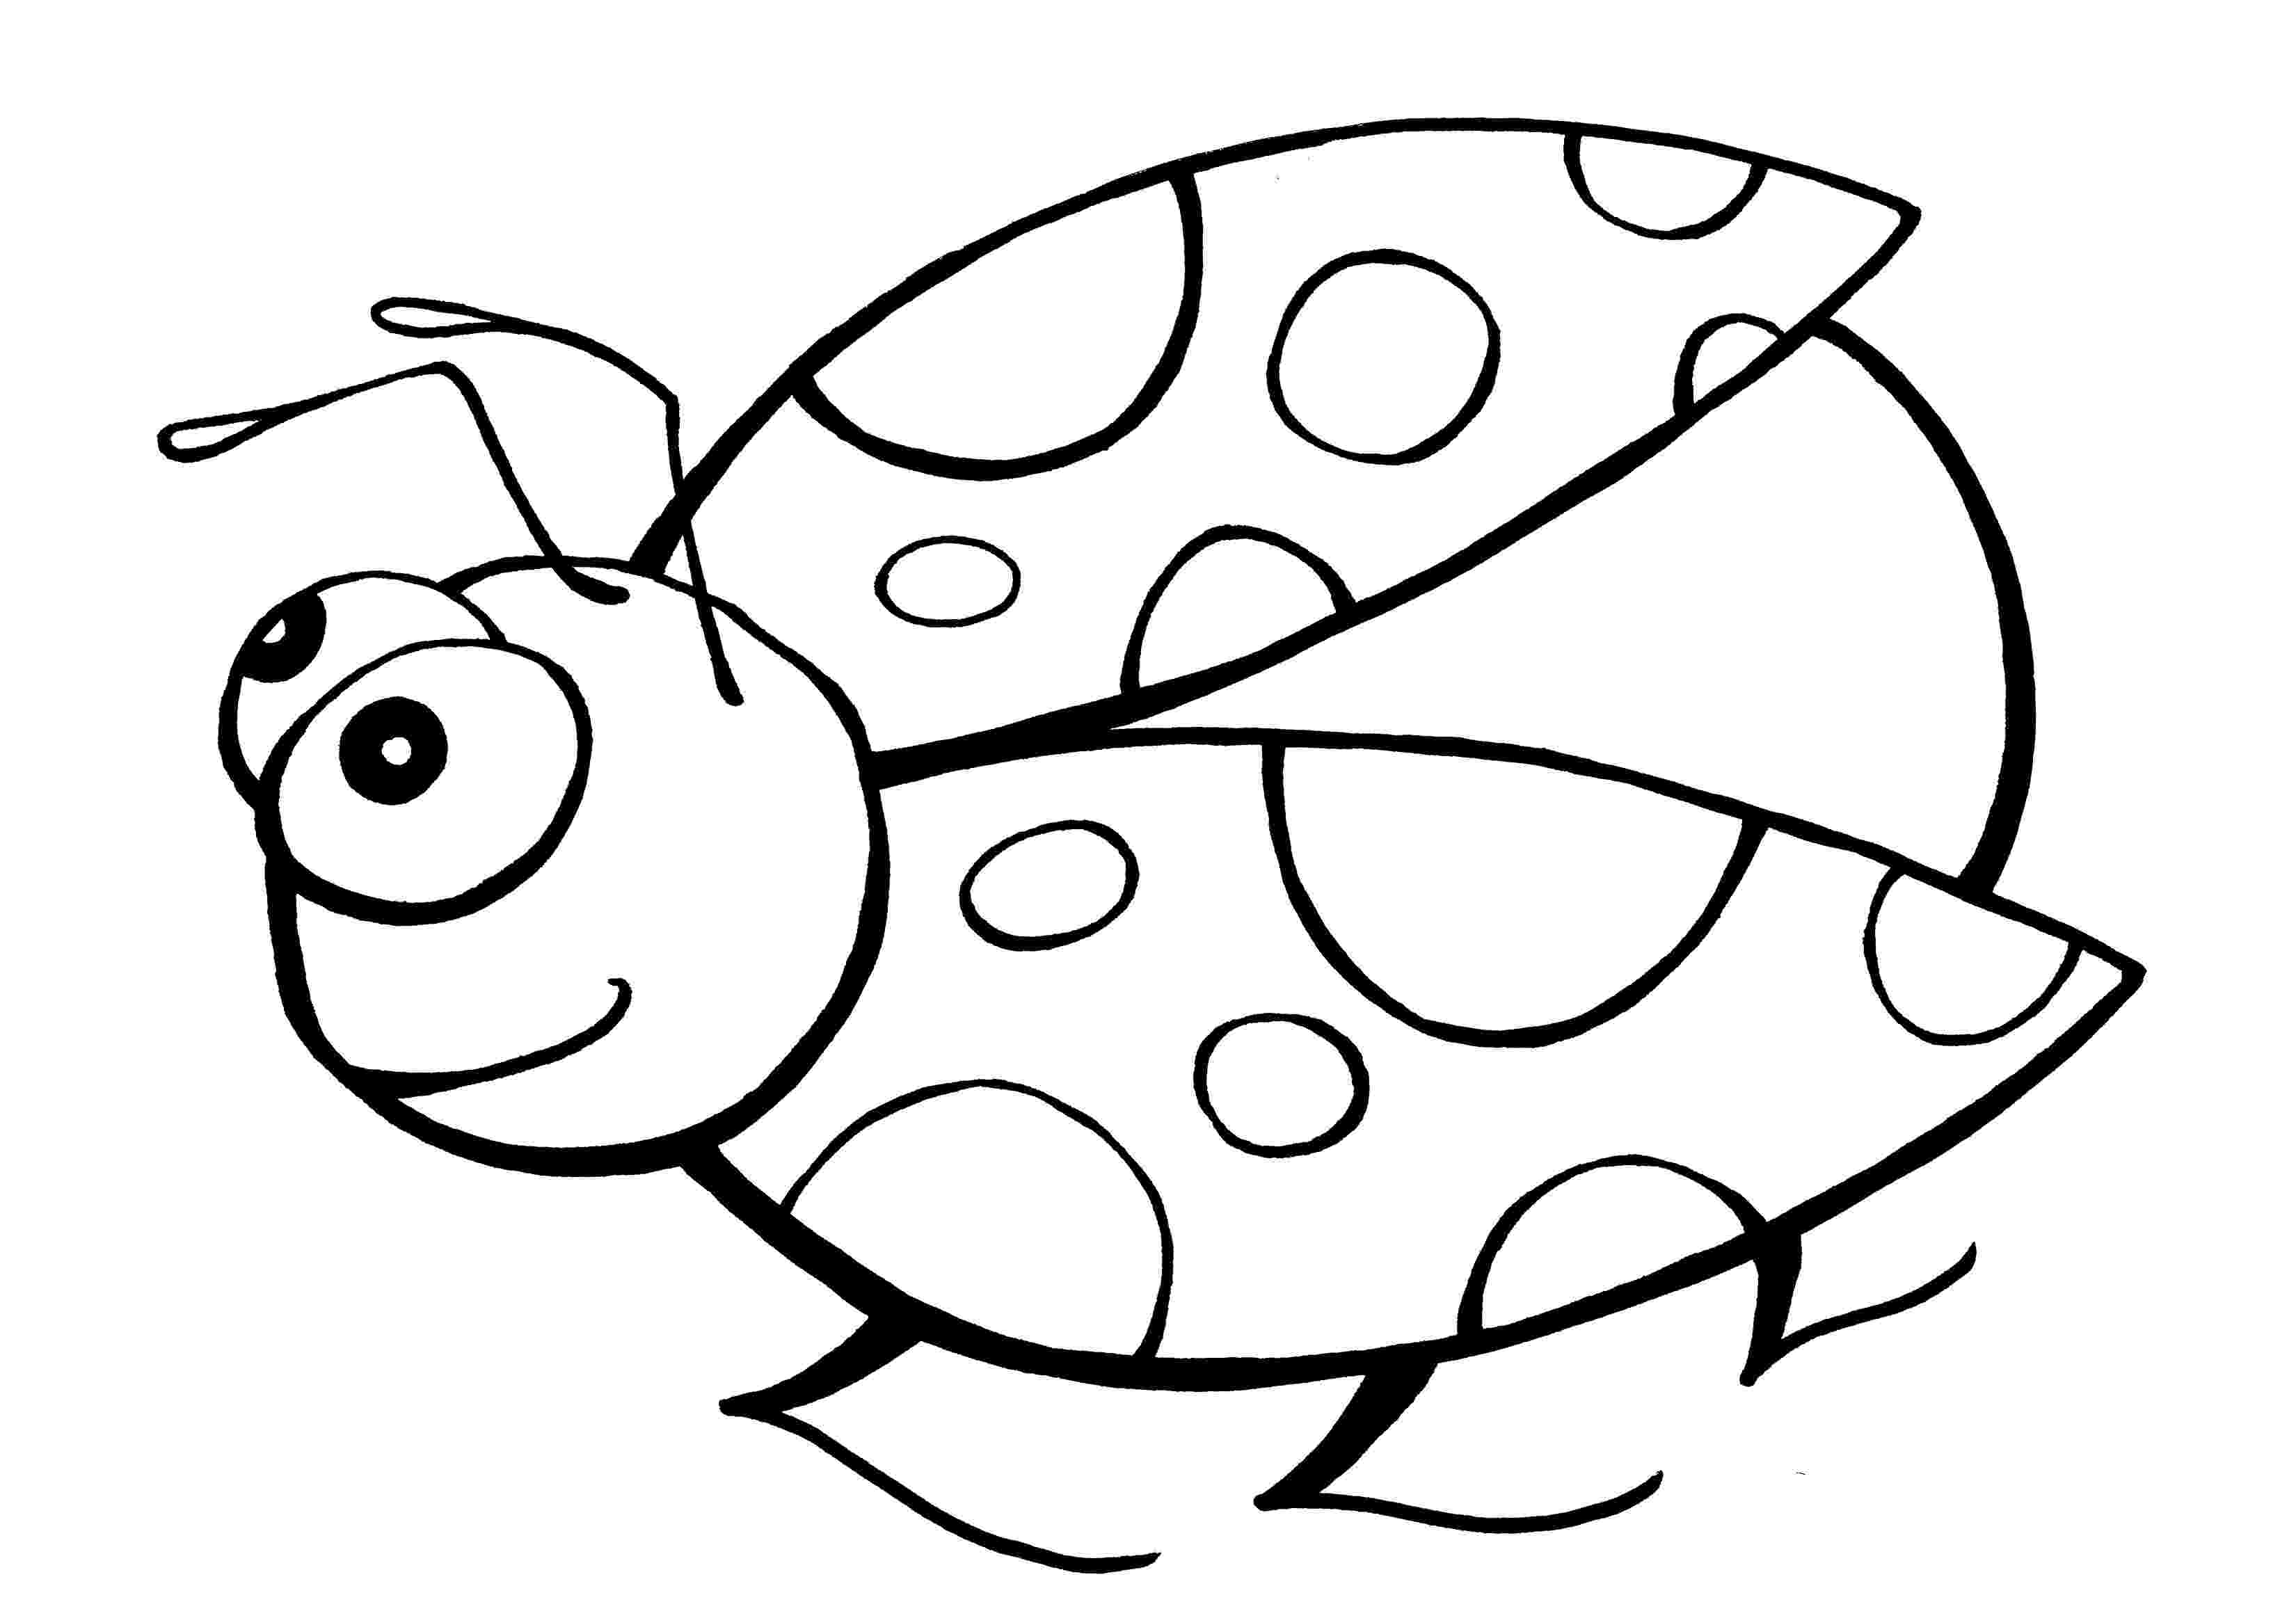 lady bug coloring pages ladybug coloring pages to download and print for free pages coloring bug lady